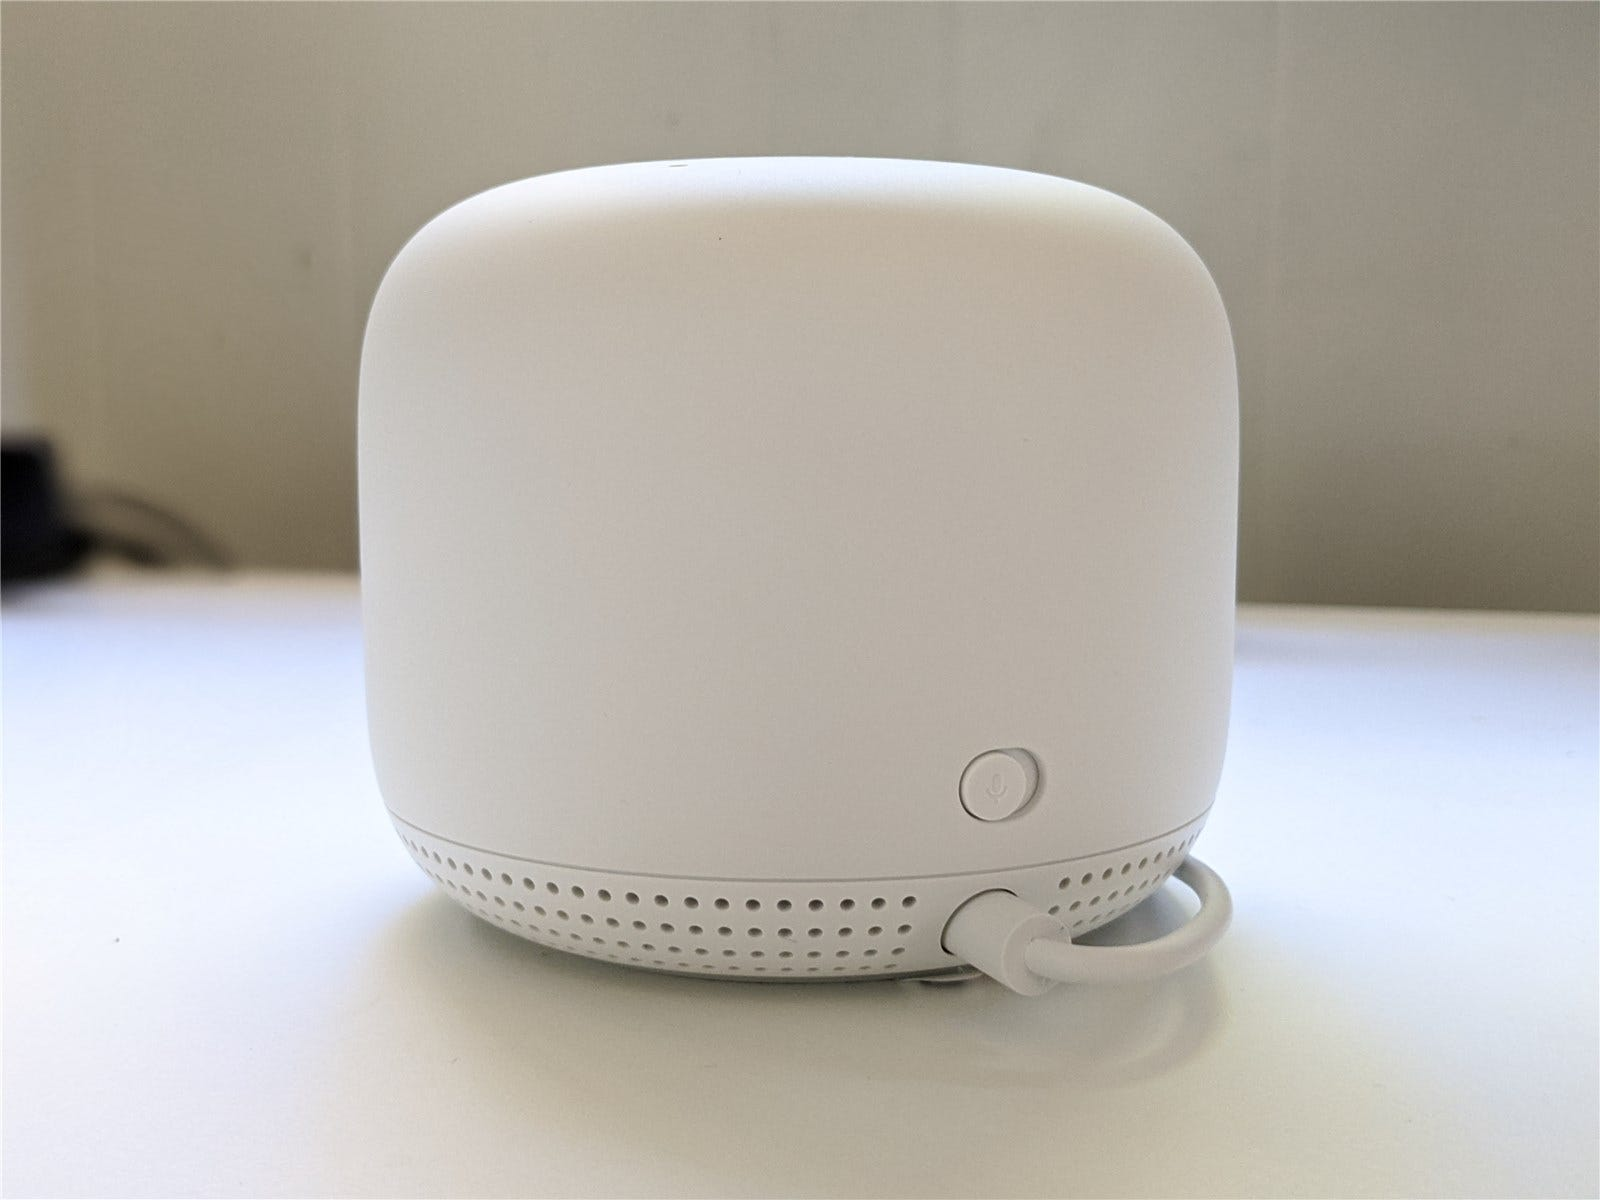 The back of the Nest Wifi point